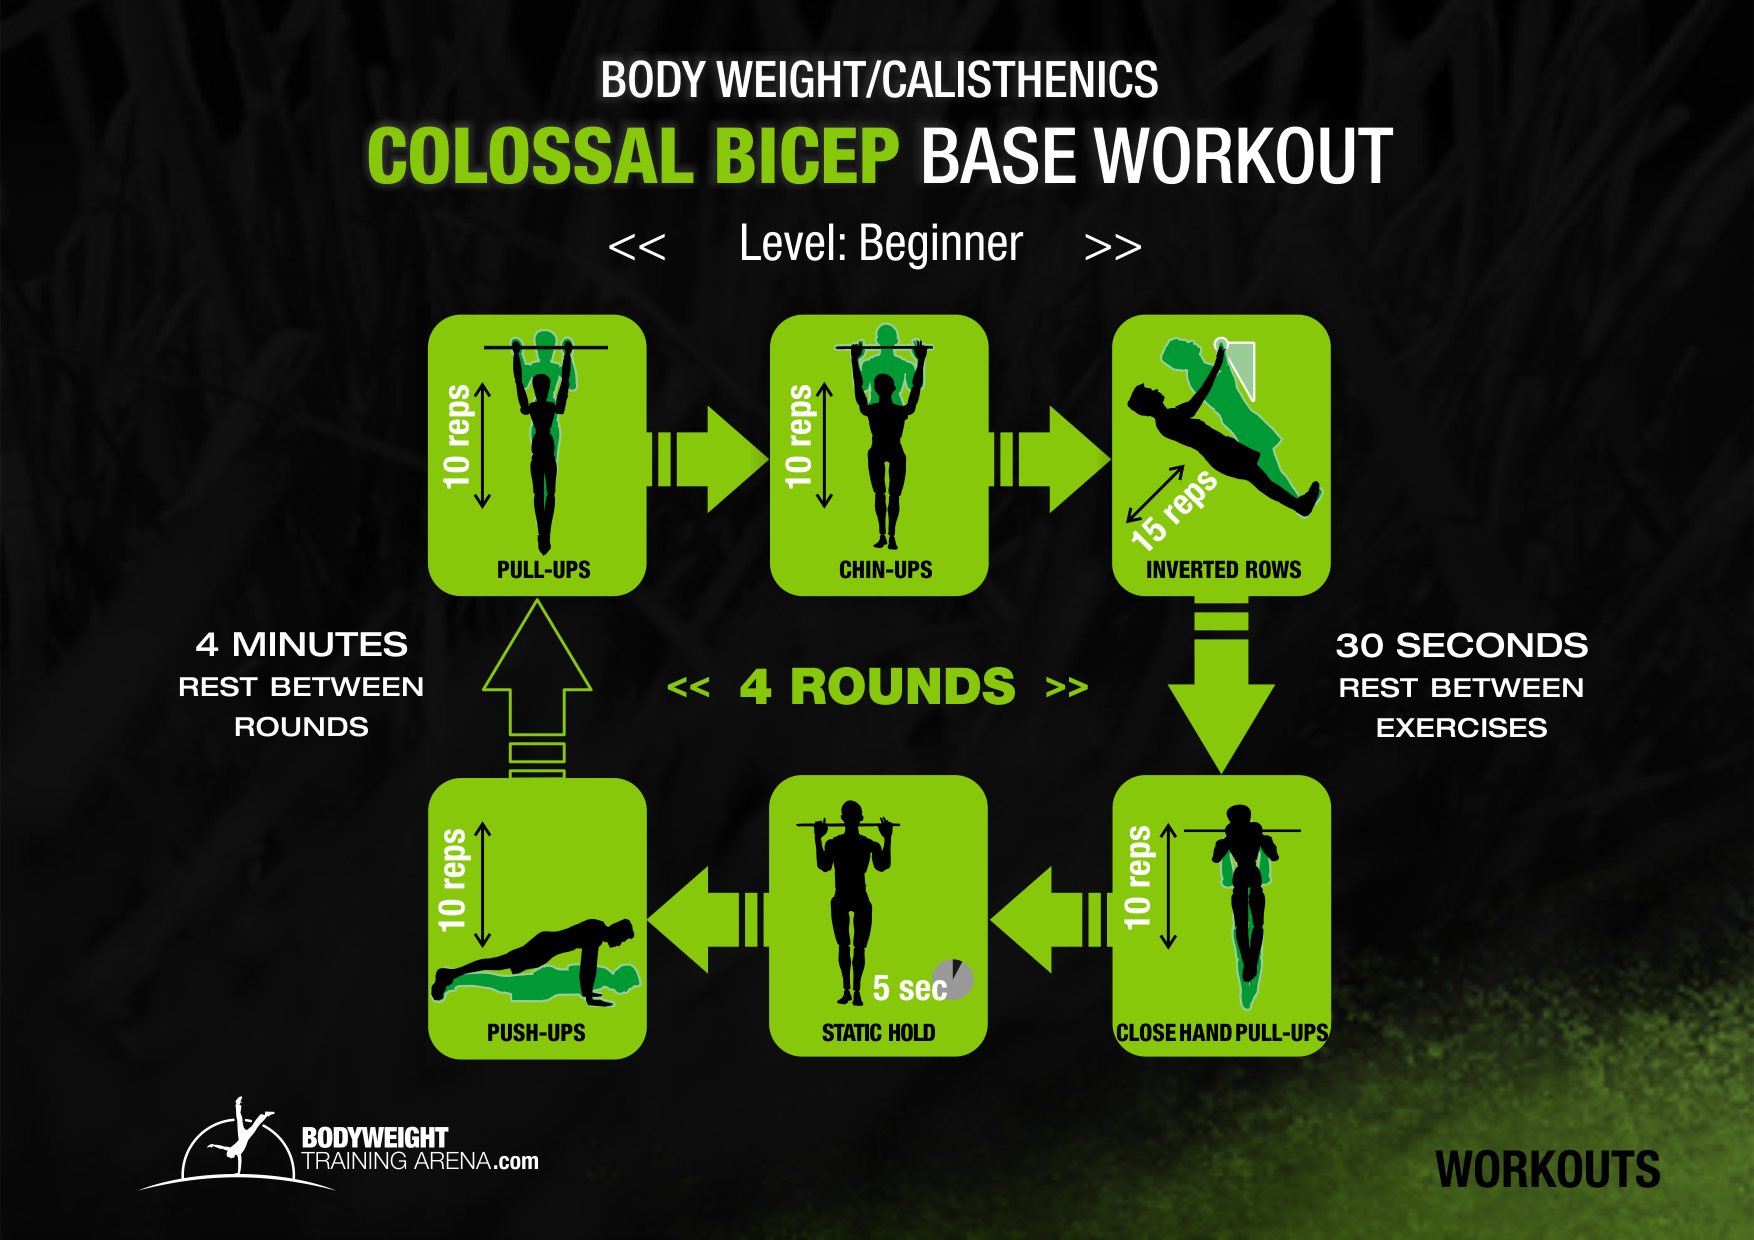 calisthenic workout routine for colossal bicep